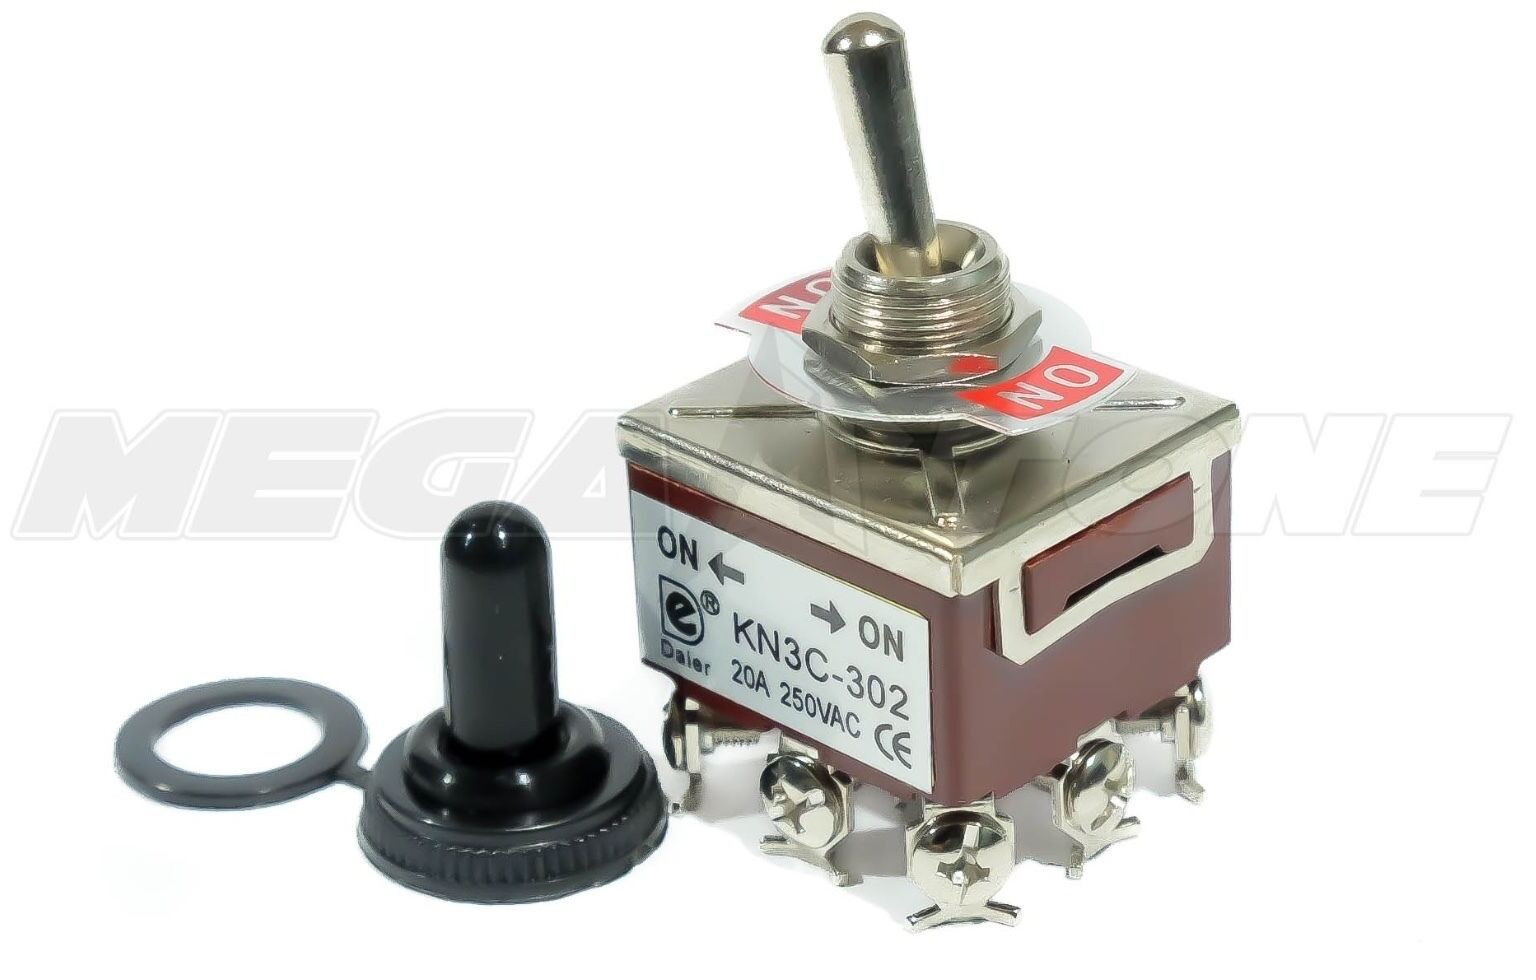 Heavy Duty 20a 125v 3pdt On Toggle Switch W Waterproof Boot Wiring Diagram 1 Of 8